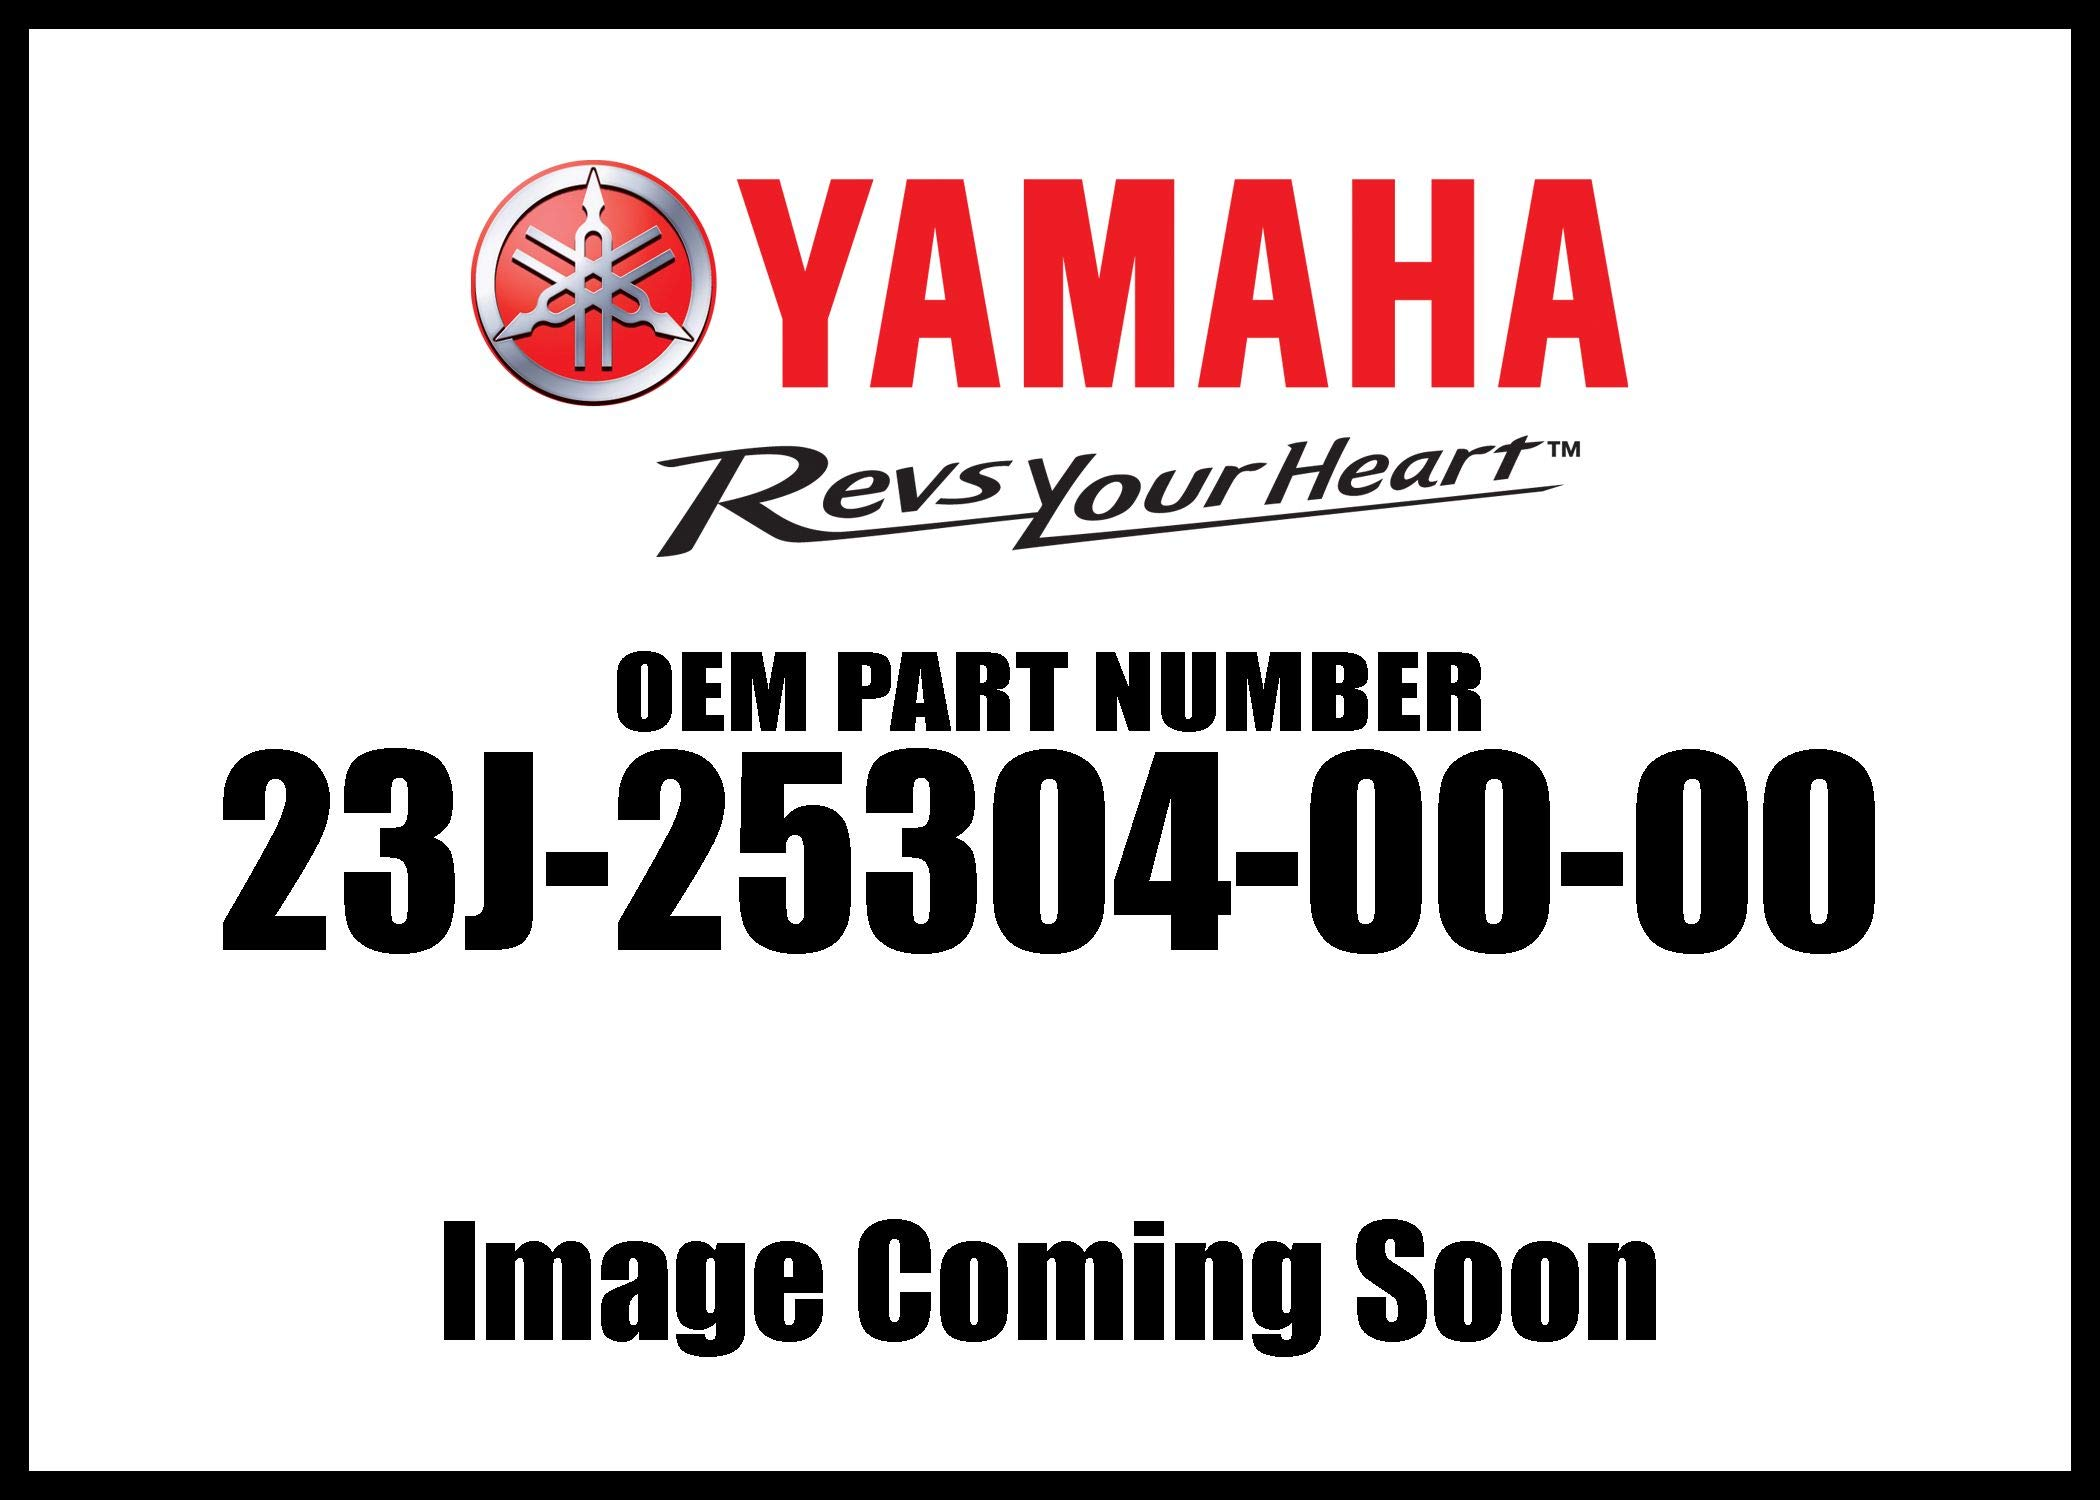 Yamaha 23J253040000 Spoke Set